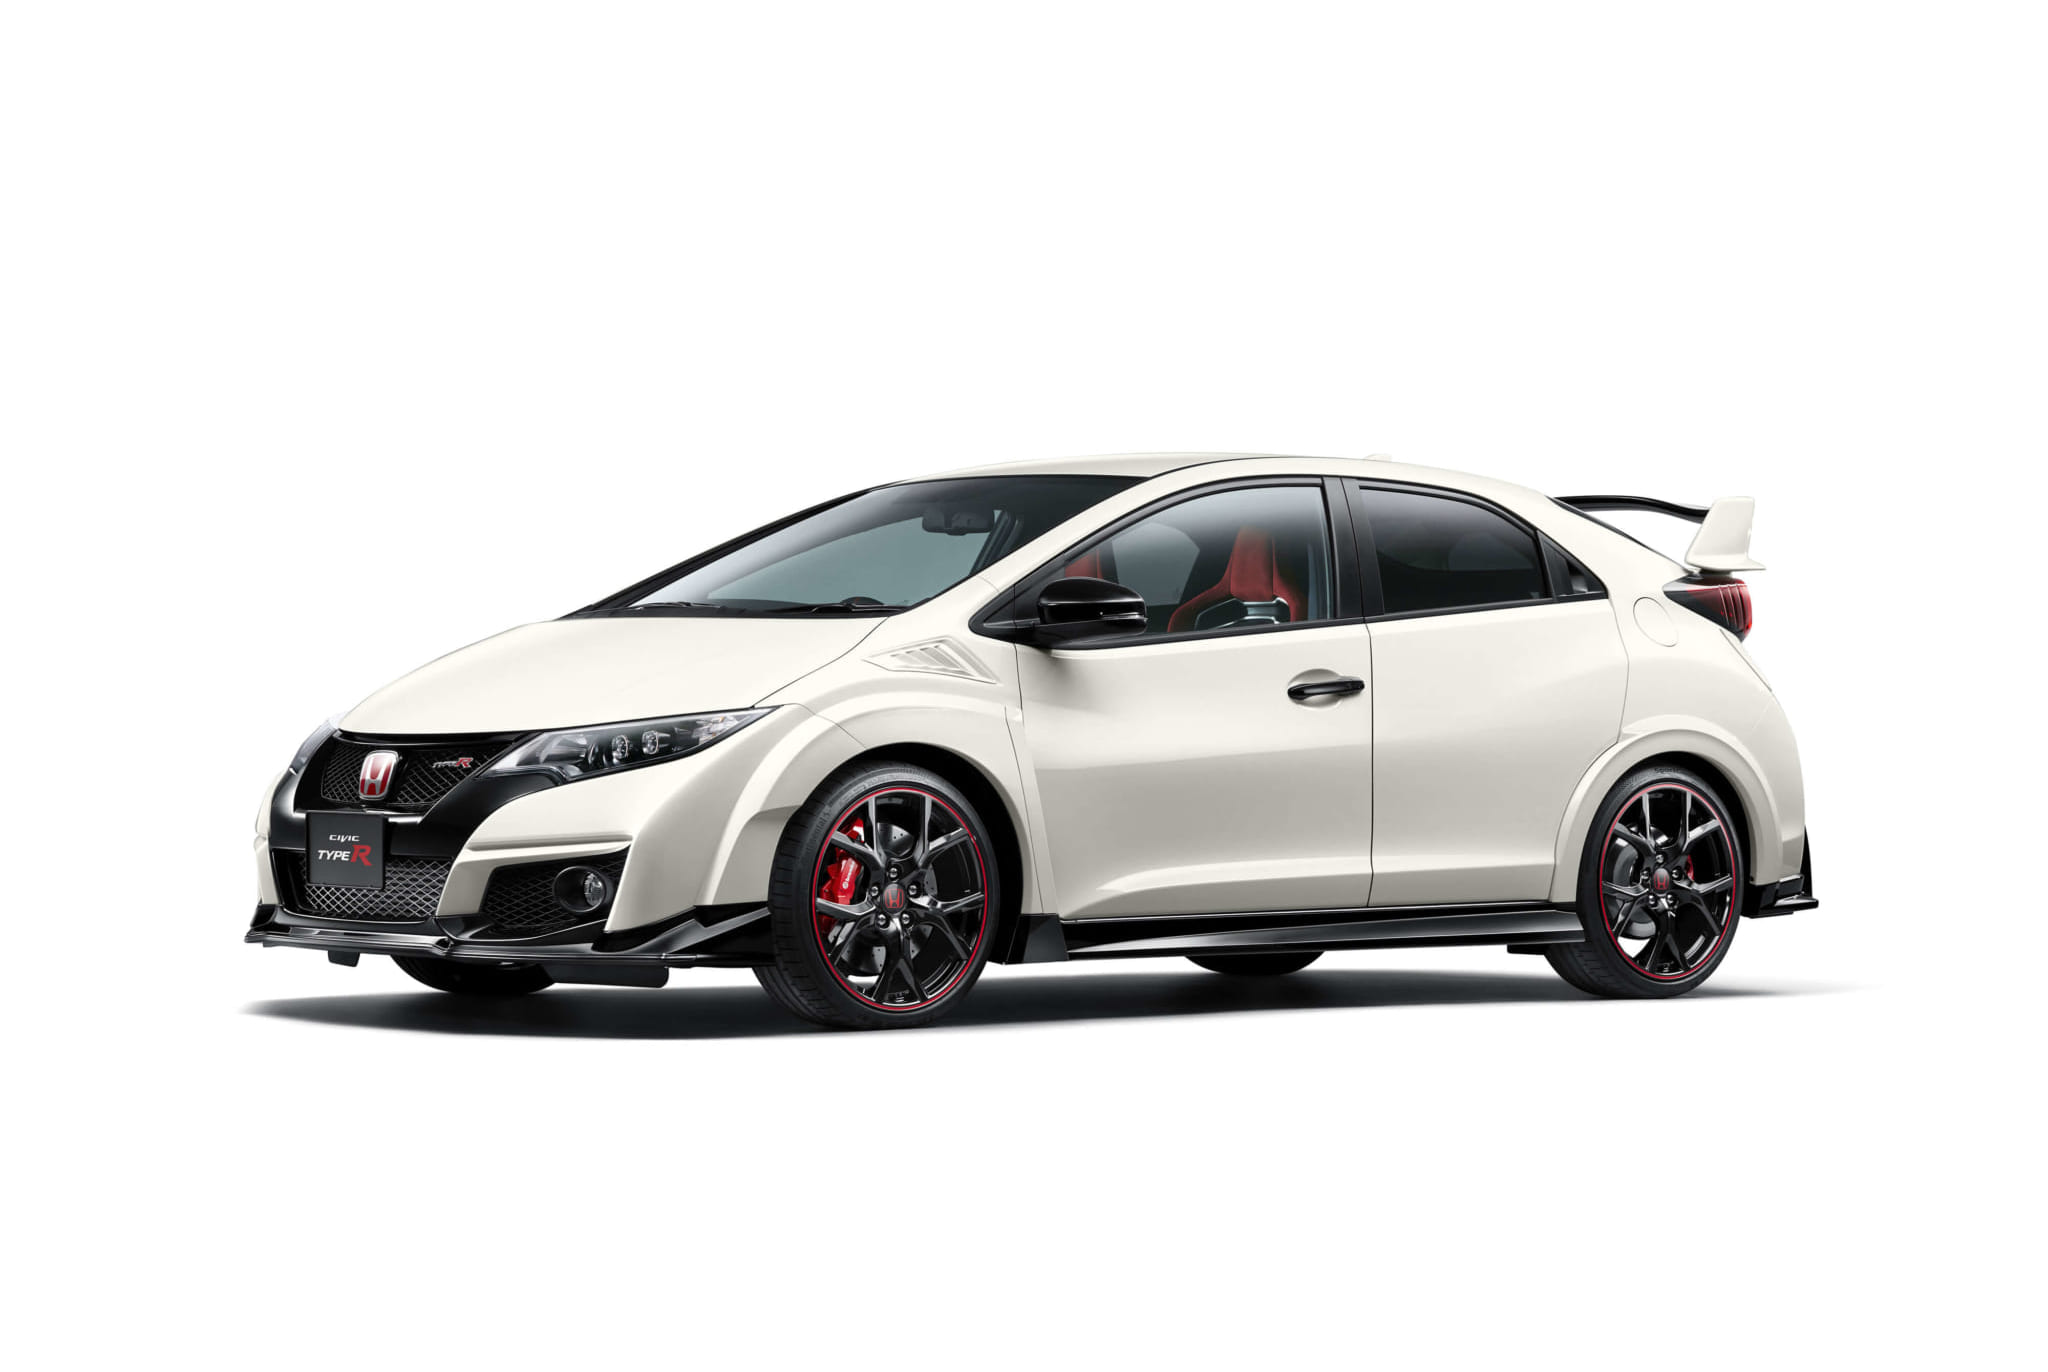 Honda_Civic-type-r_DBA-FK2_front_side